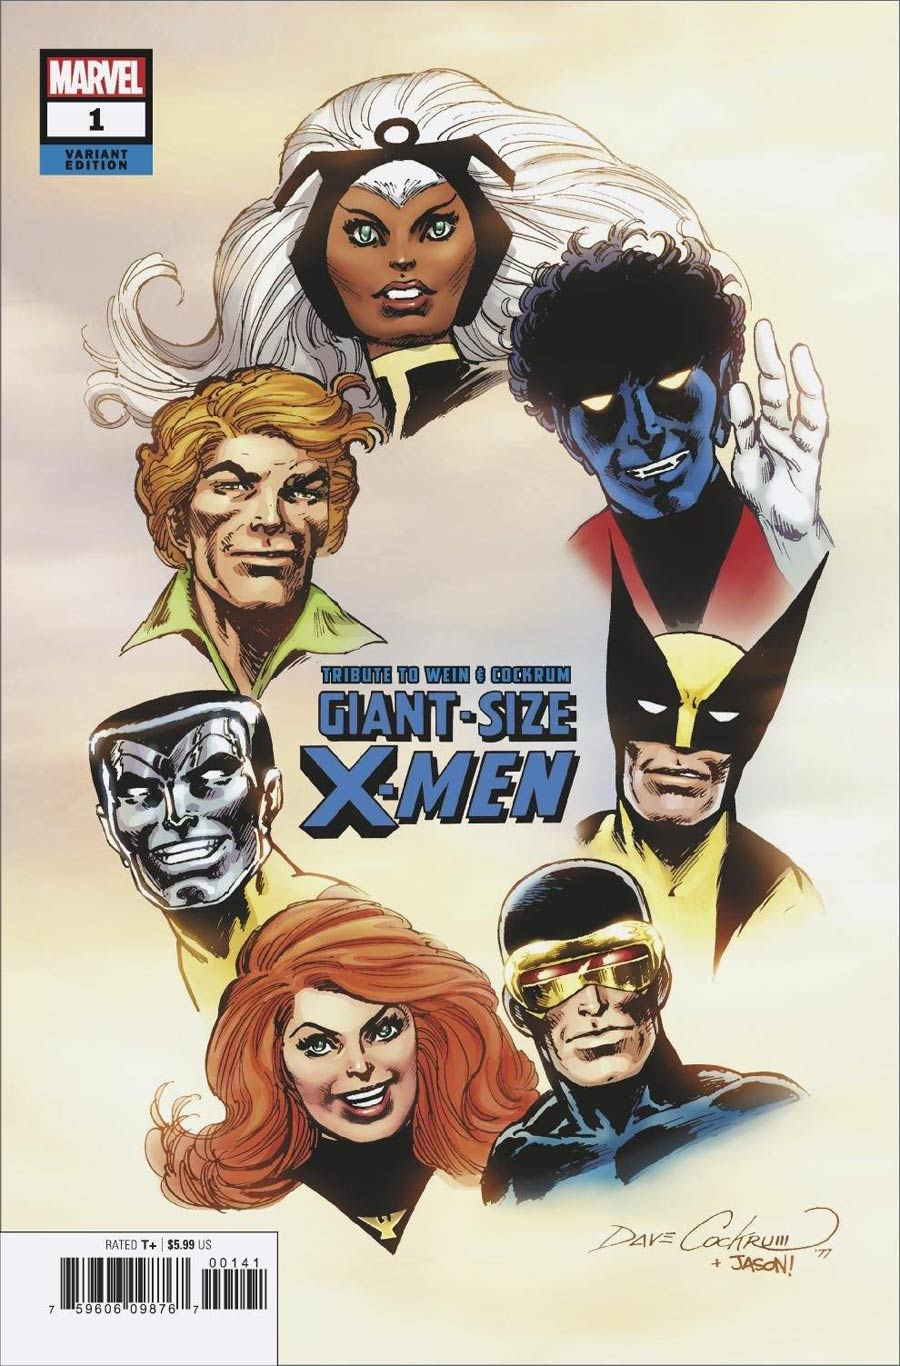 Giant-Size X-Men Tribute To Len Wein & Dave Cockrum One Shot Cover C Variant Dave Cockrum Hidden Gem Cover